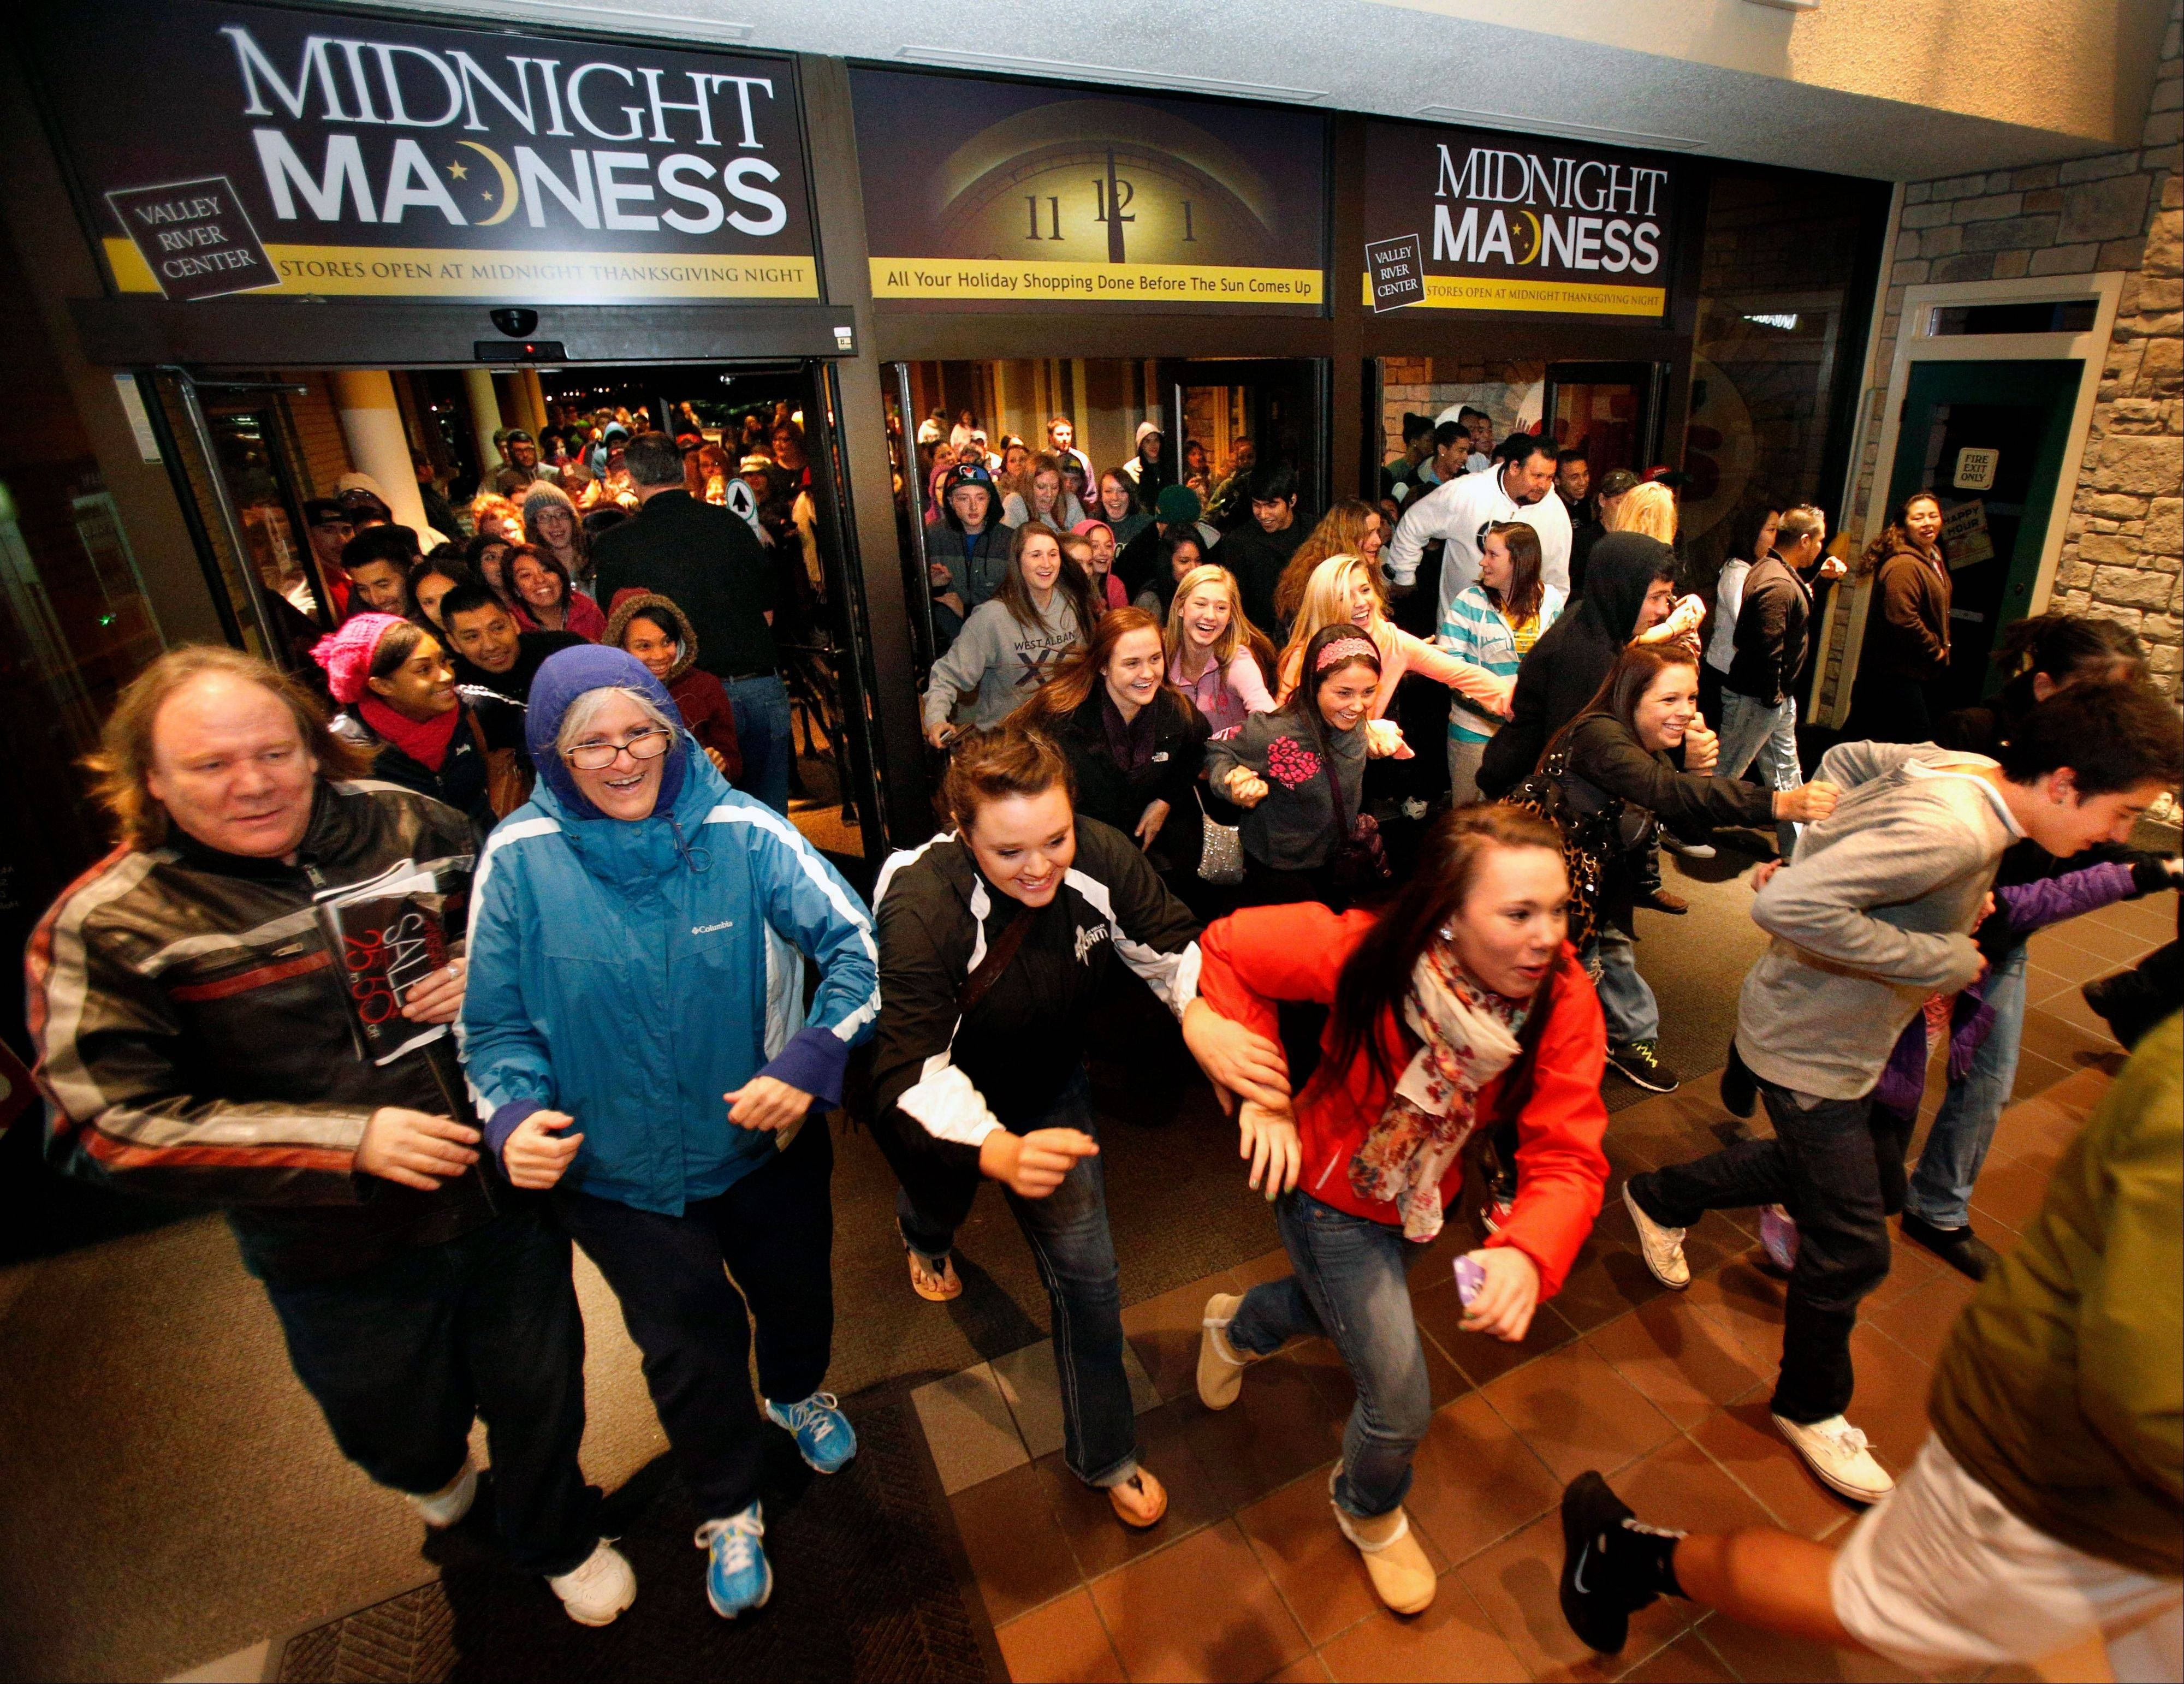 Black Friday shoppers pour into the Valley River Center mall for the Midnight Madness sale Friday in Eugene, Ore.